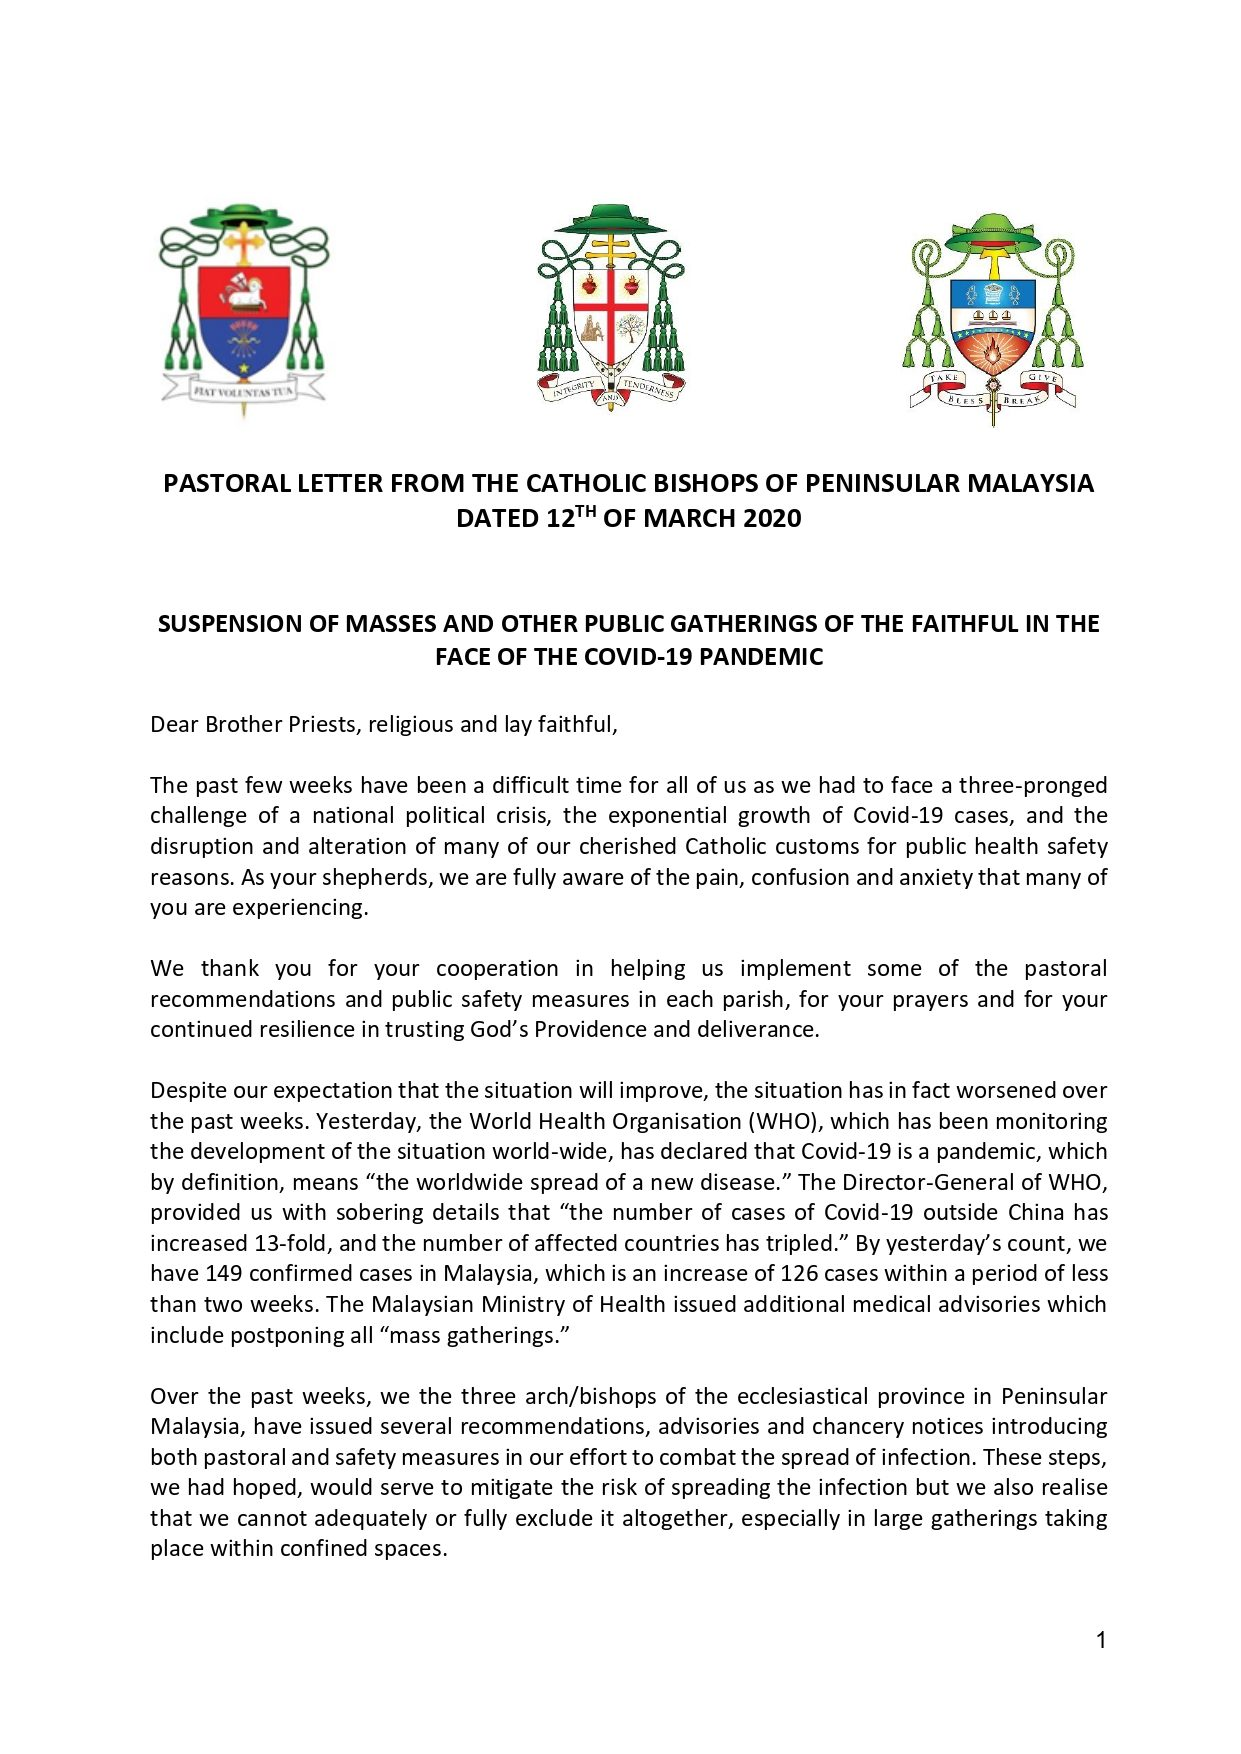 1. Pastoral Letter Suspension of Masses page 1